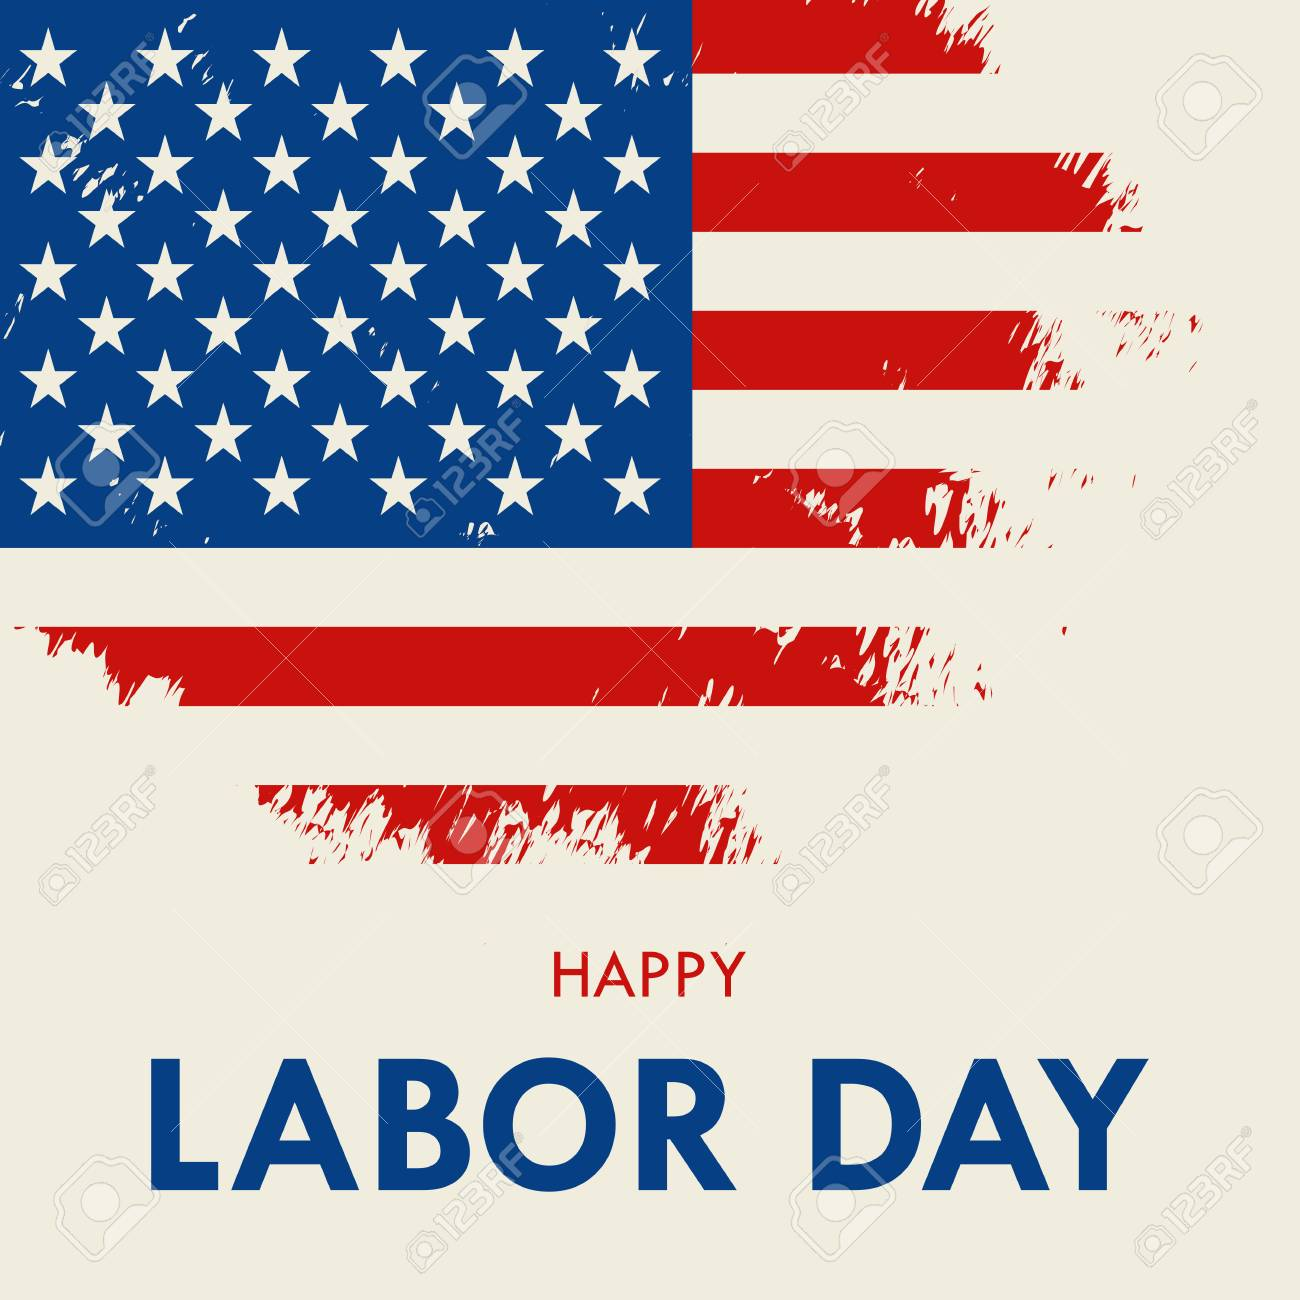 American Labor Day Greeting Card Vector Illustration Royalty Free